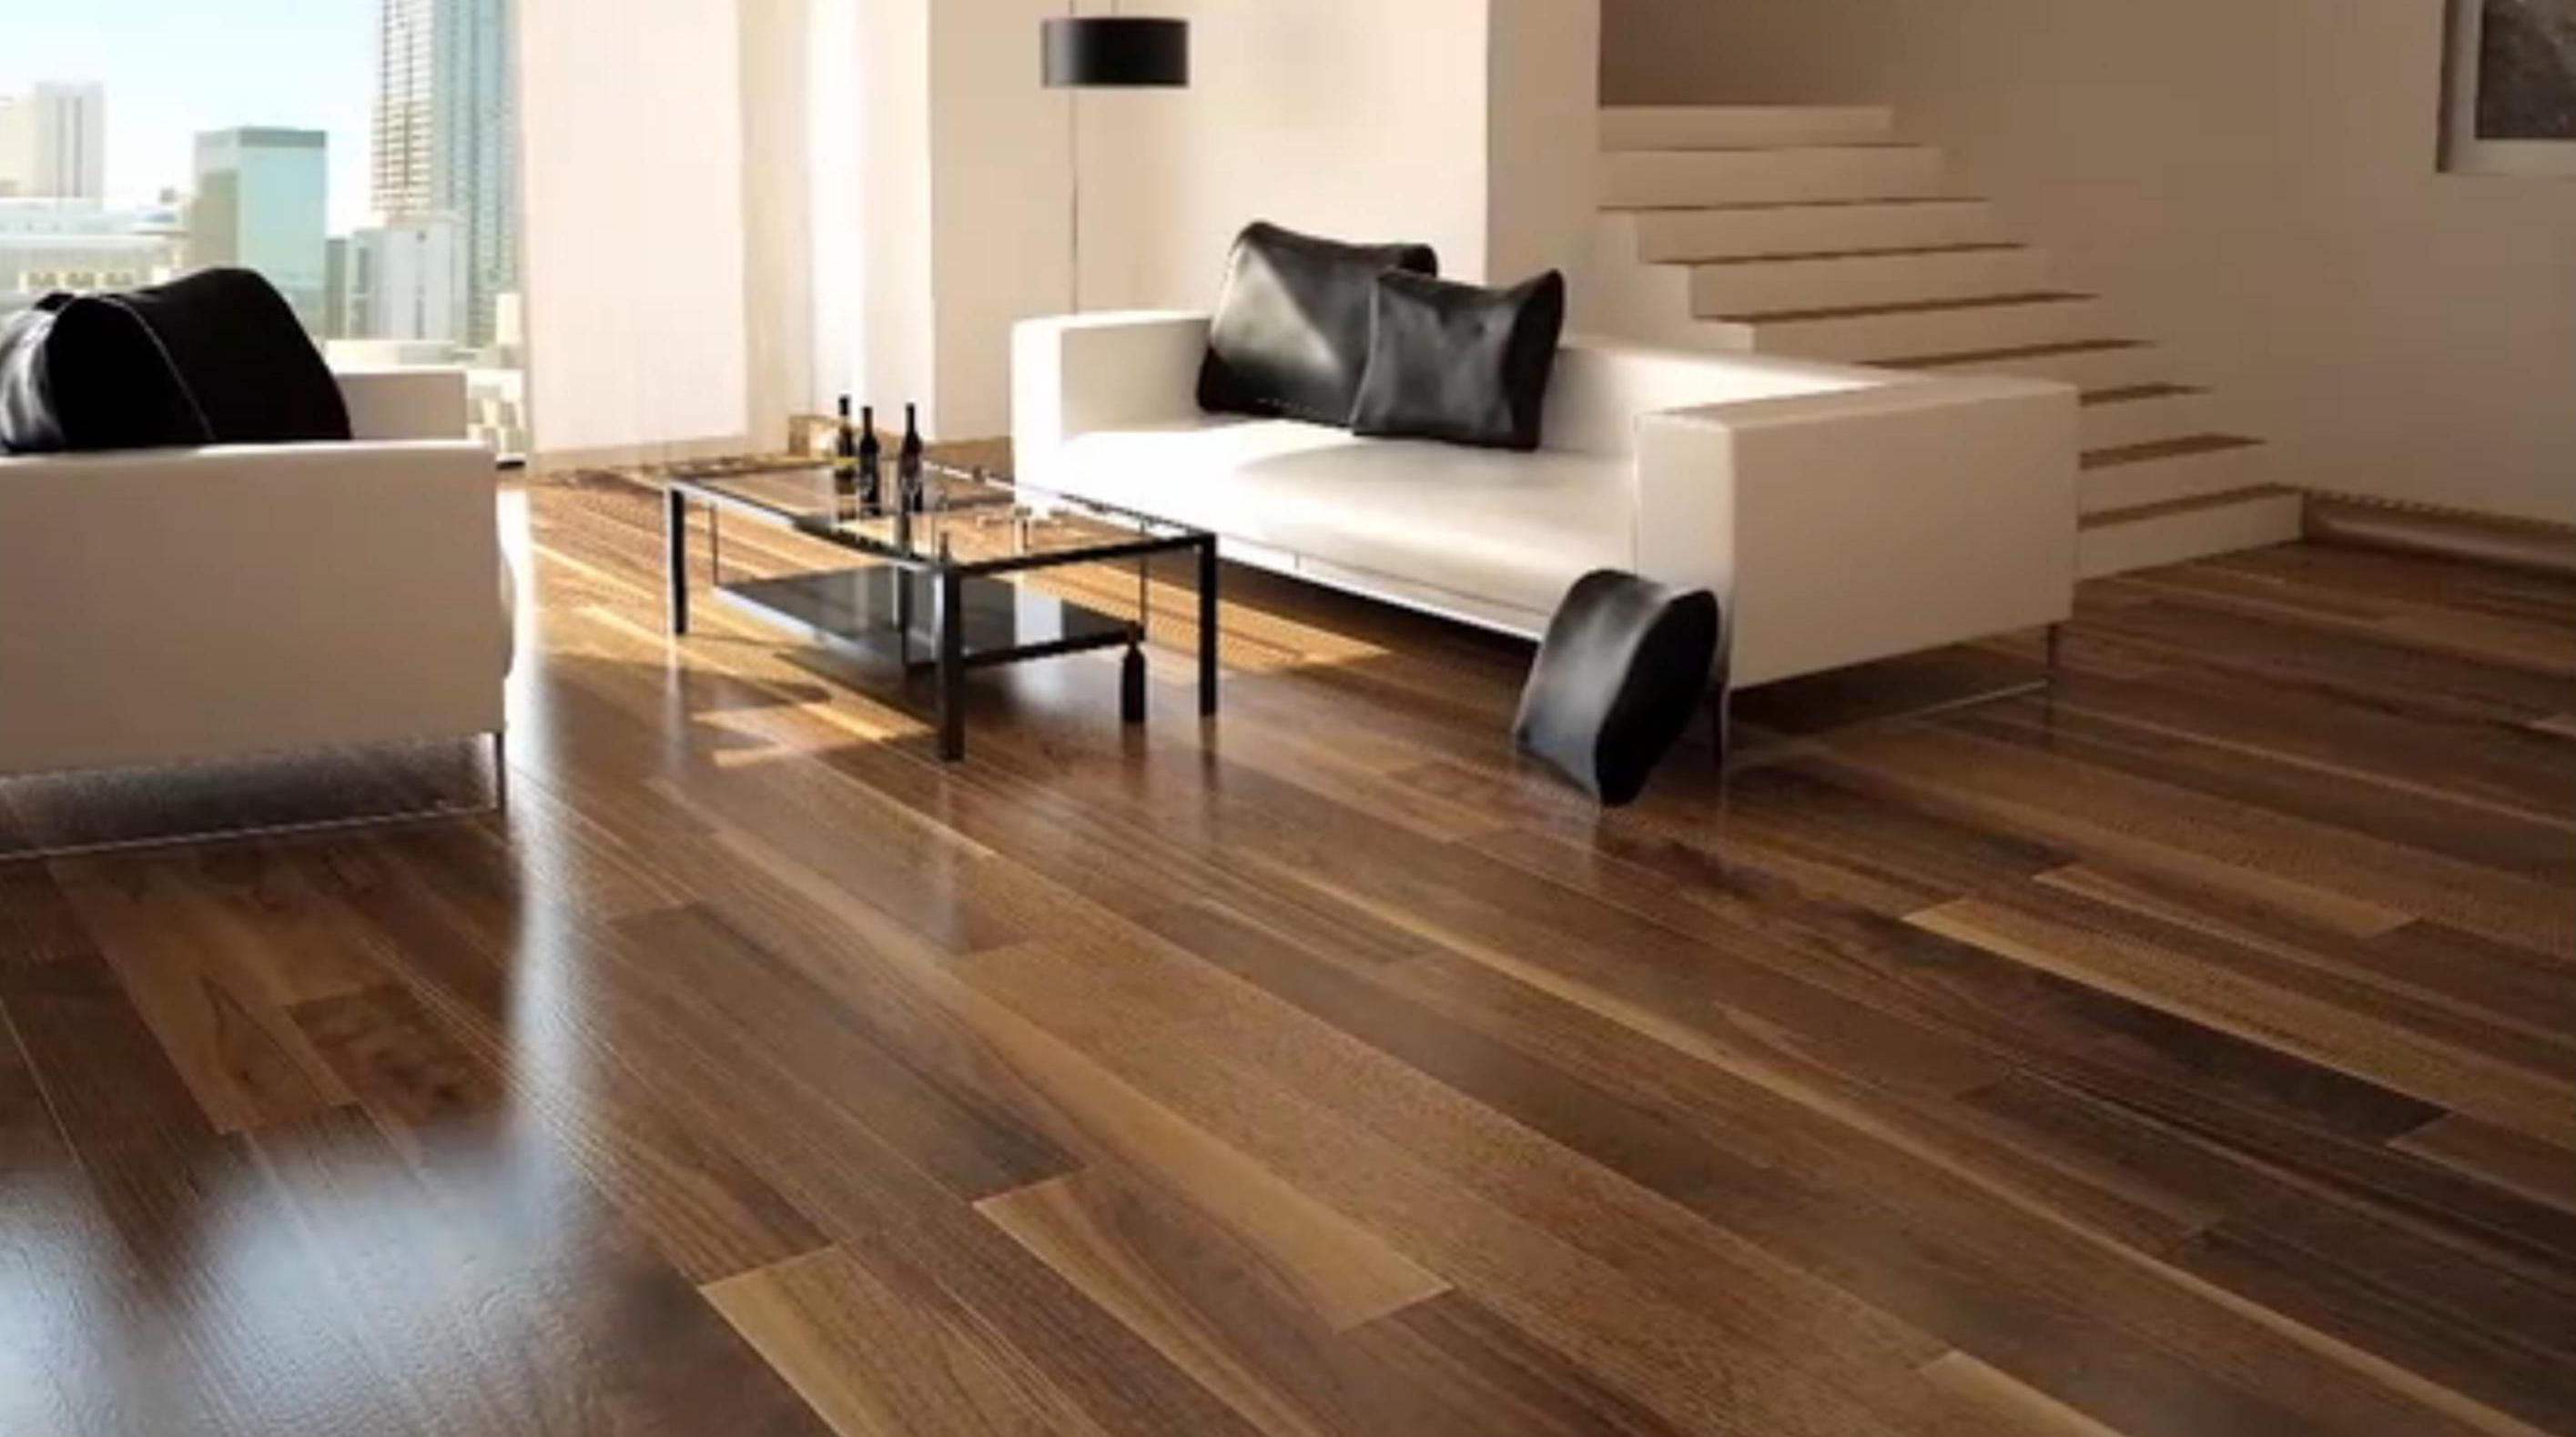 Can you believe it this wood floor is actually made of cork good